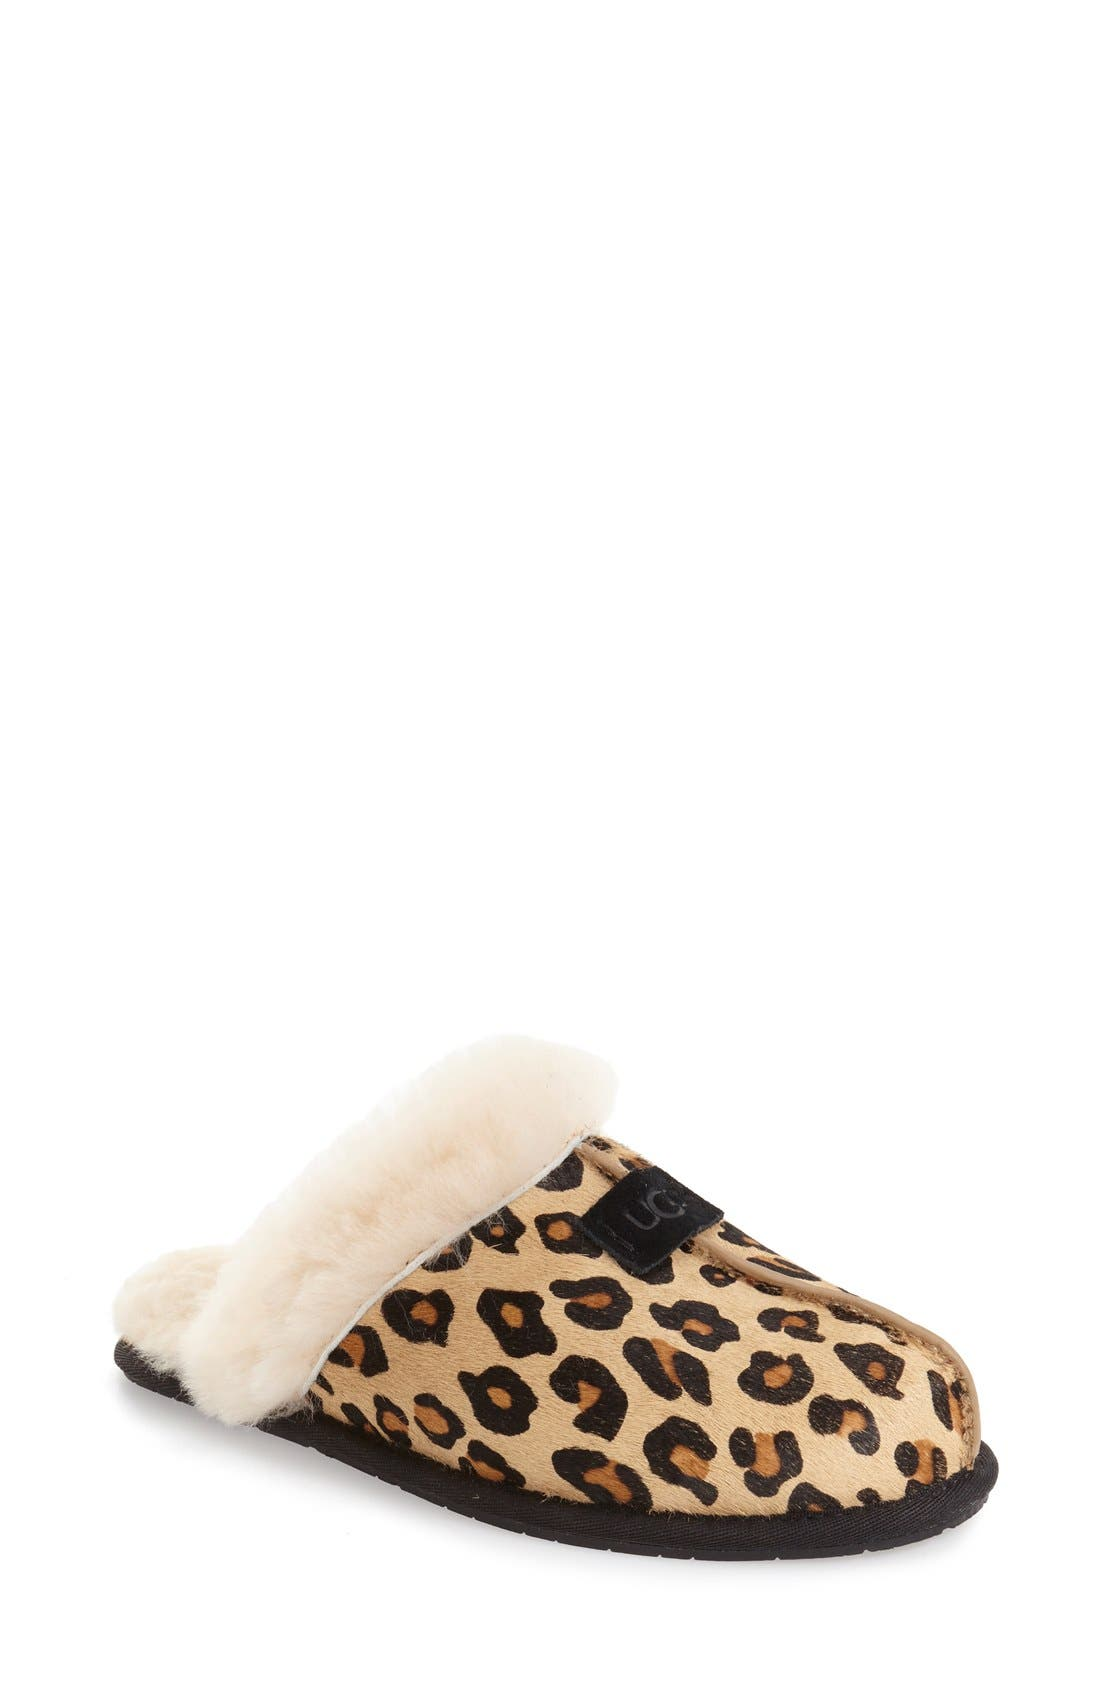 UGG® Scuffette II Leopard Spot Calf Hair Genuine Shearling Cuff Slipper (Women)